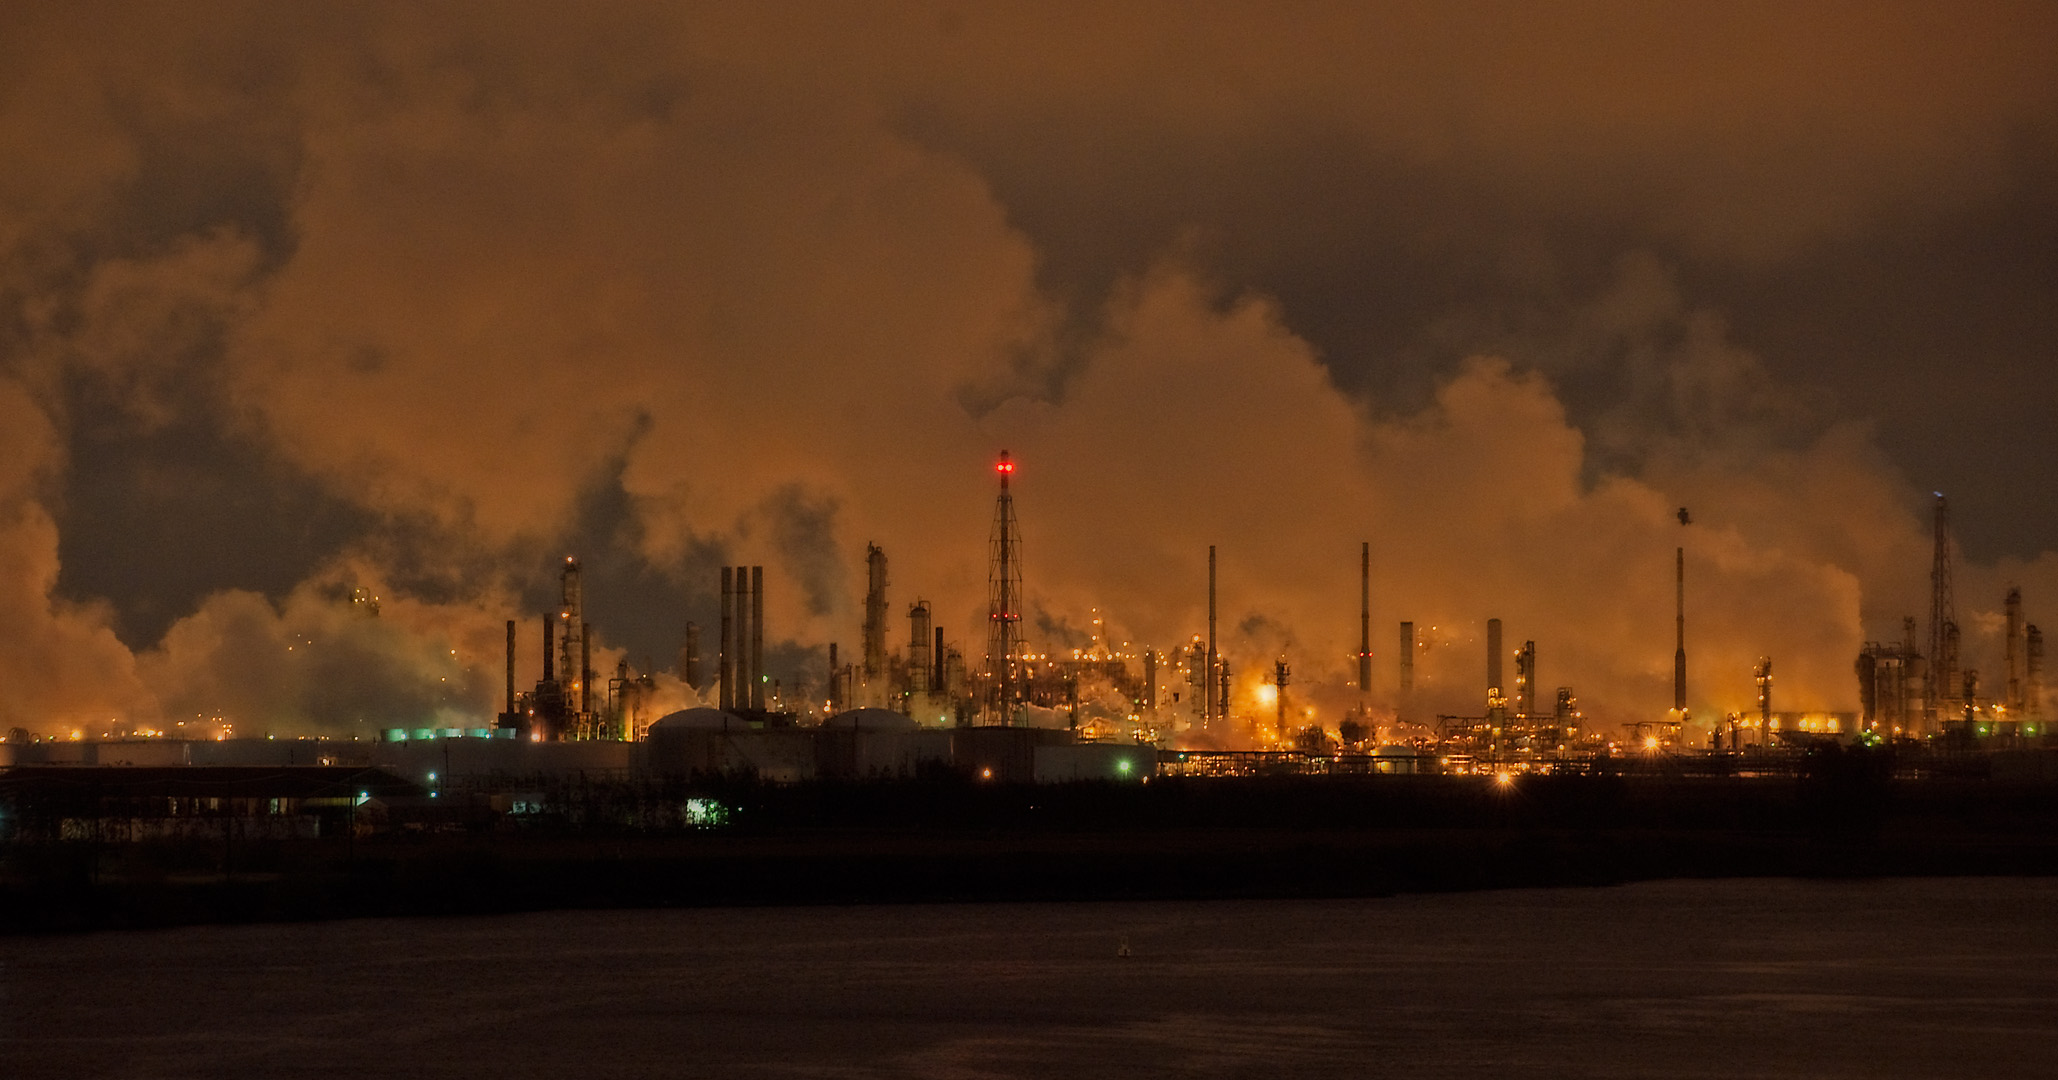 Industrial Landscape At Night Taken On The Houston Ship